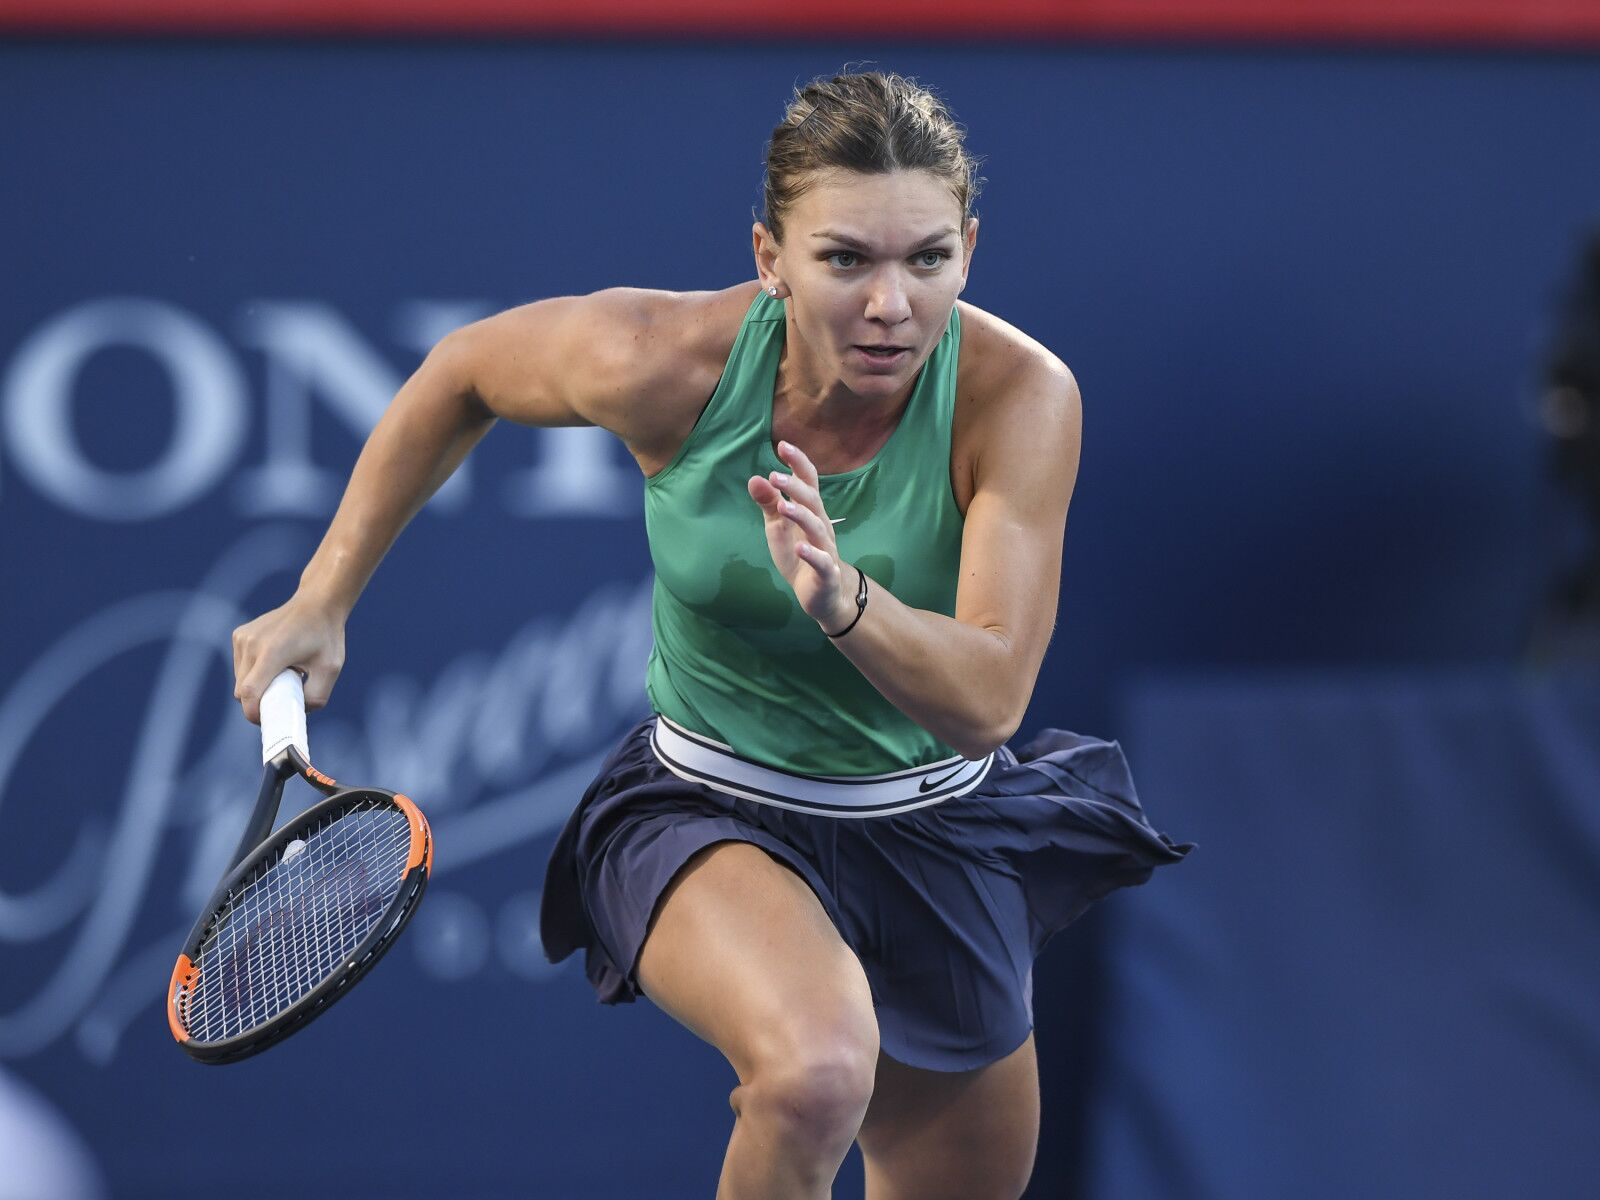 Simona Halep Looks Ahead To 2019 Without Coach Darren Cahill